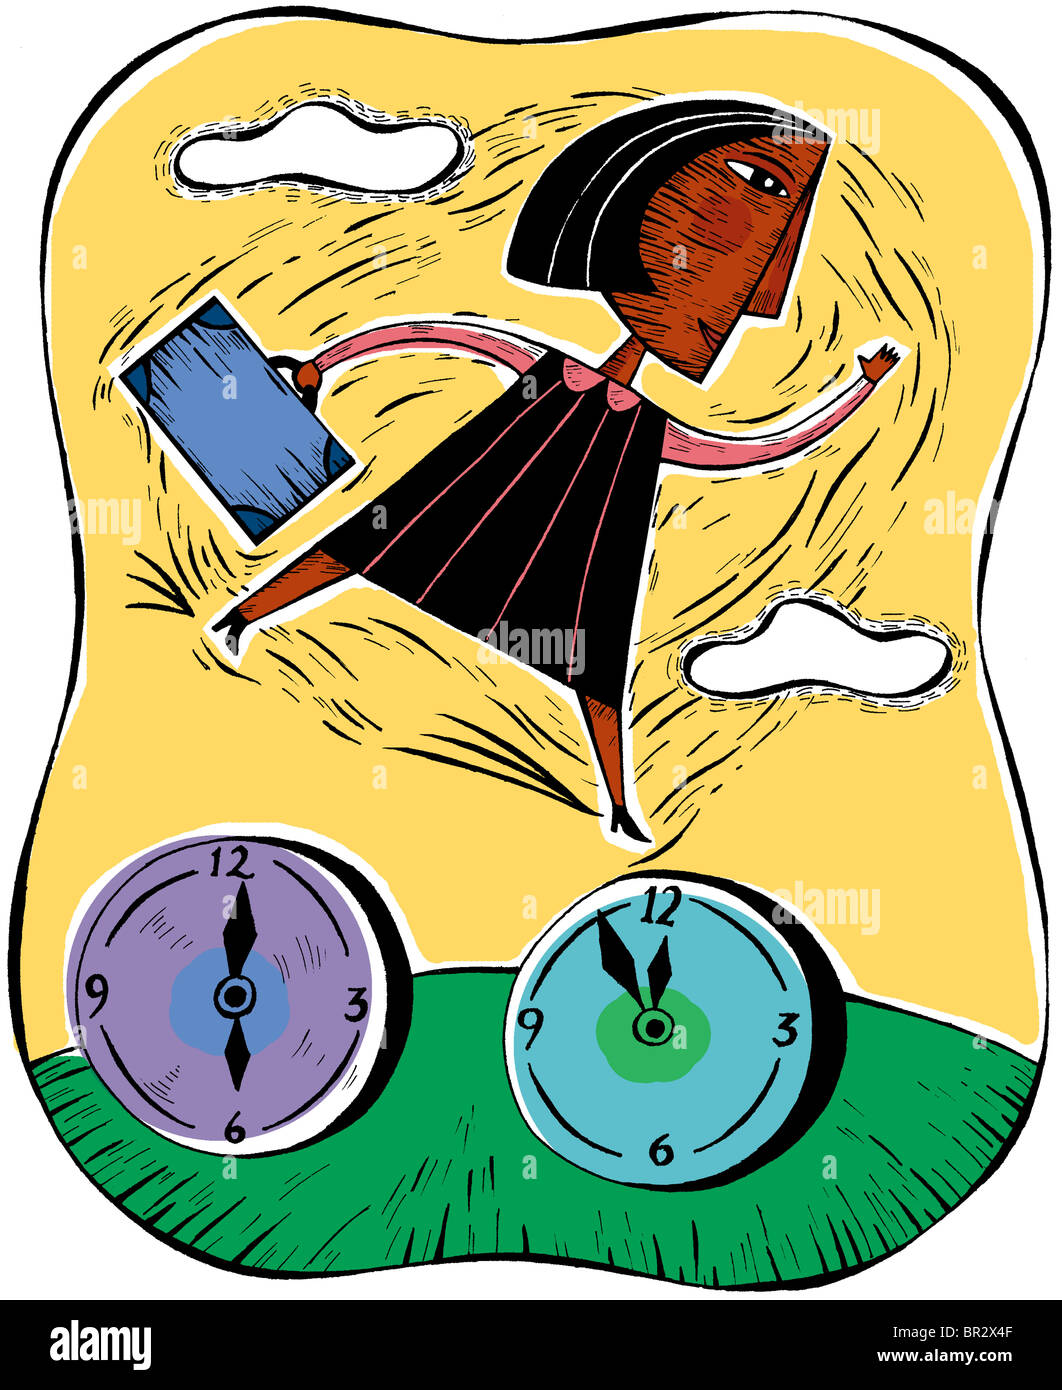 Woman leaping between time clocks - Stock Image